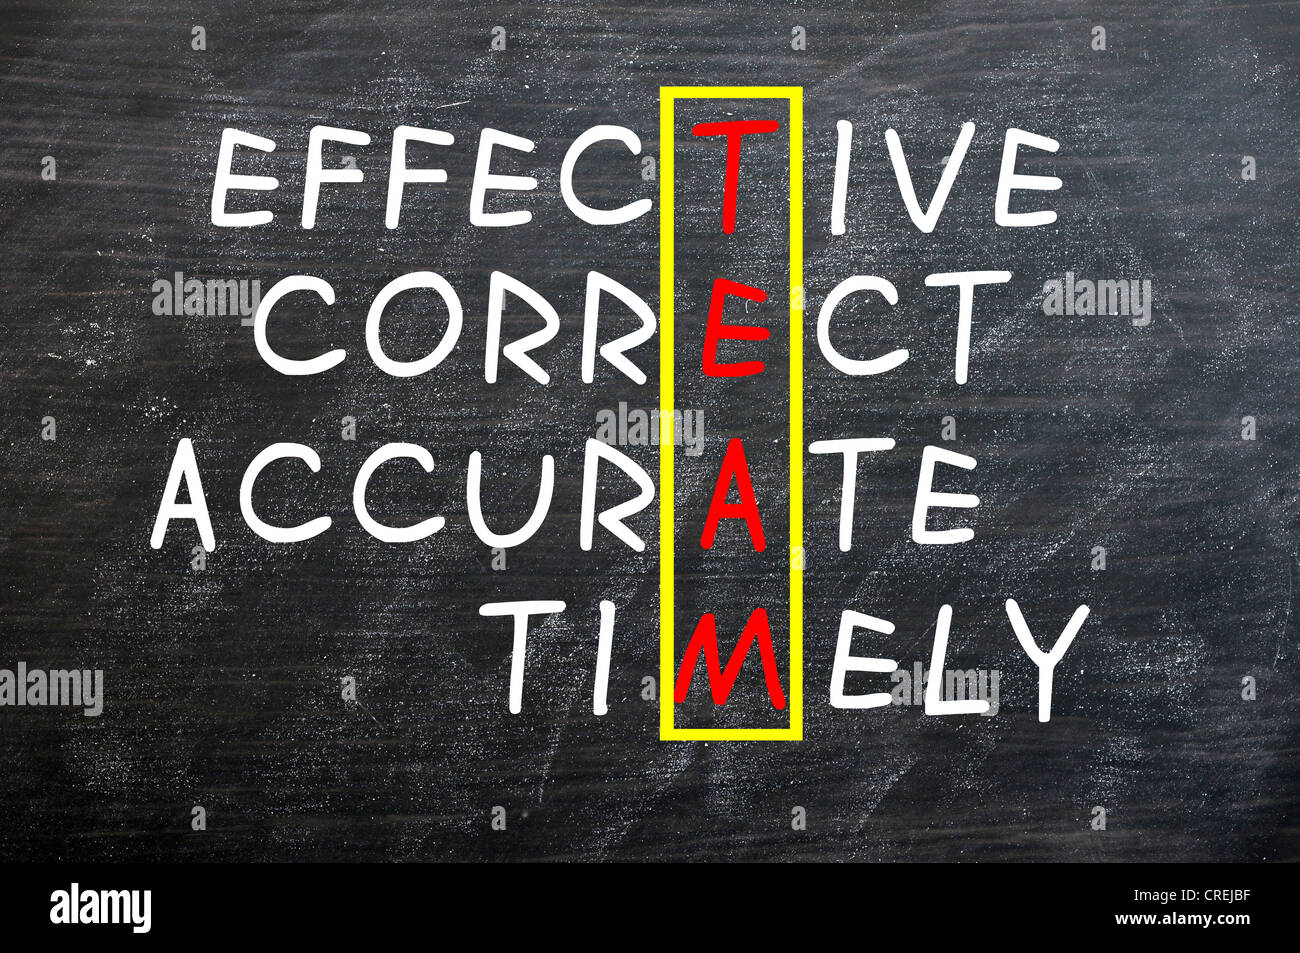 accurate achieve acronym background black blackboard board business chalk chalkboard classroom company concept reminder - Stock Image